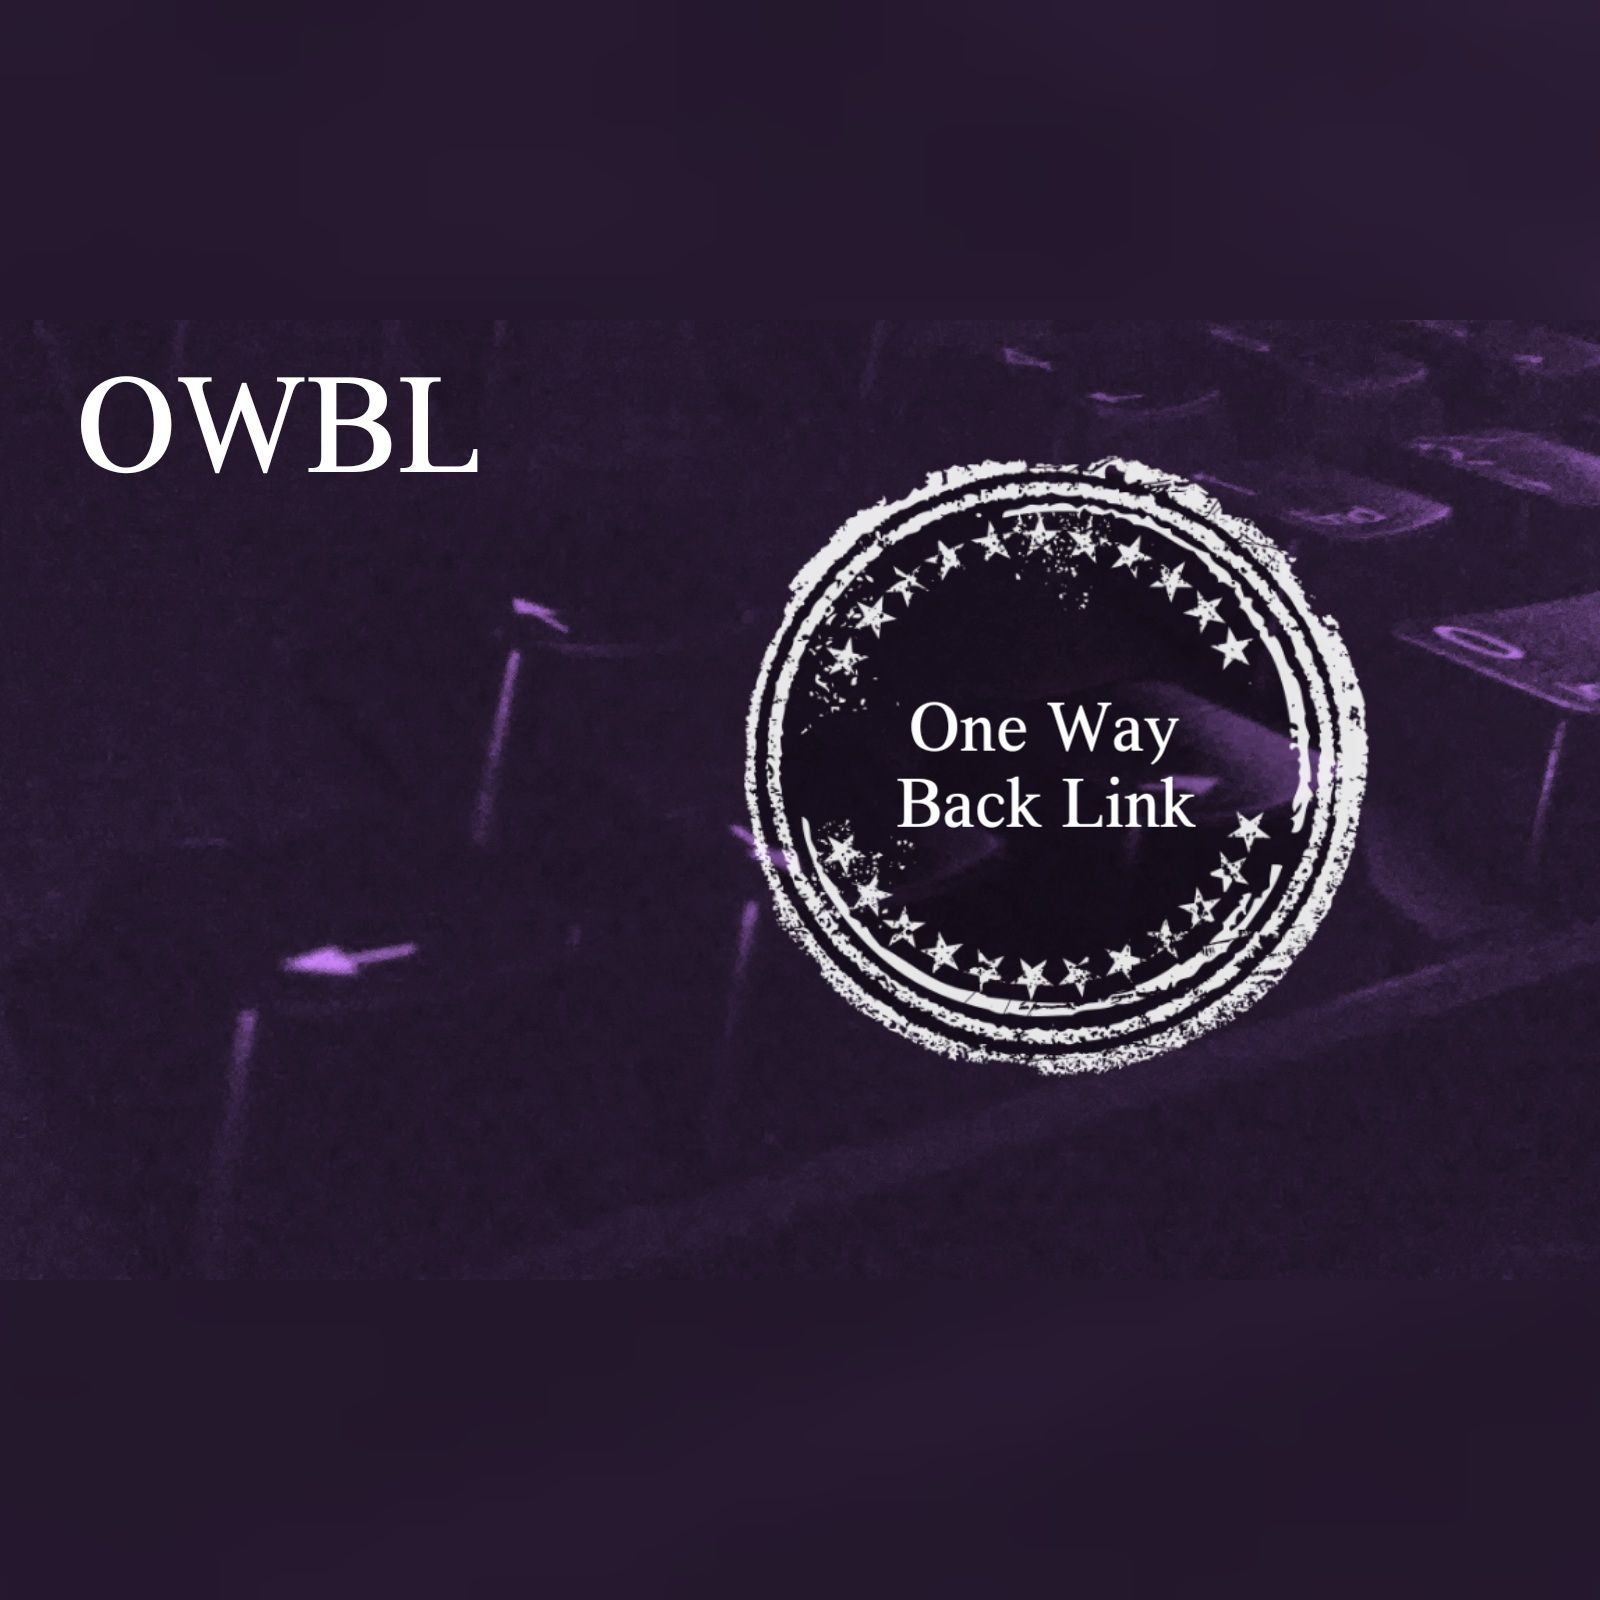 OWBL - One Way Back Link